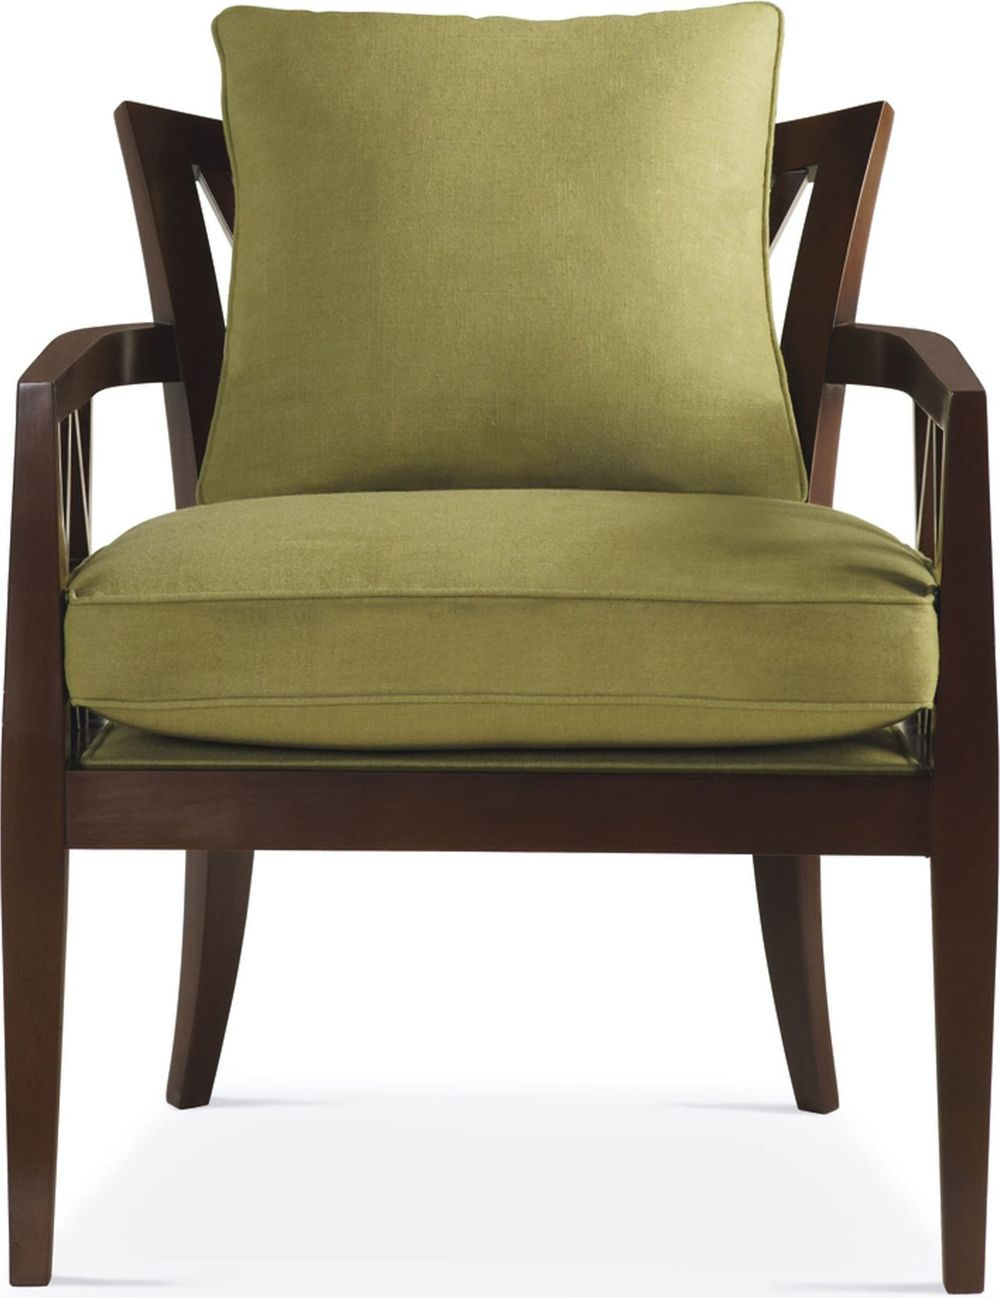 Baker Furniture - Double X-Back Chair